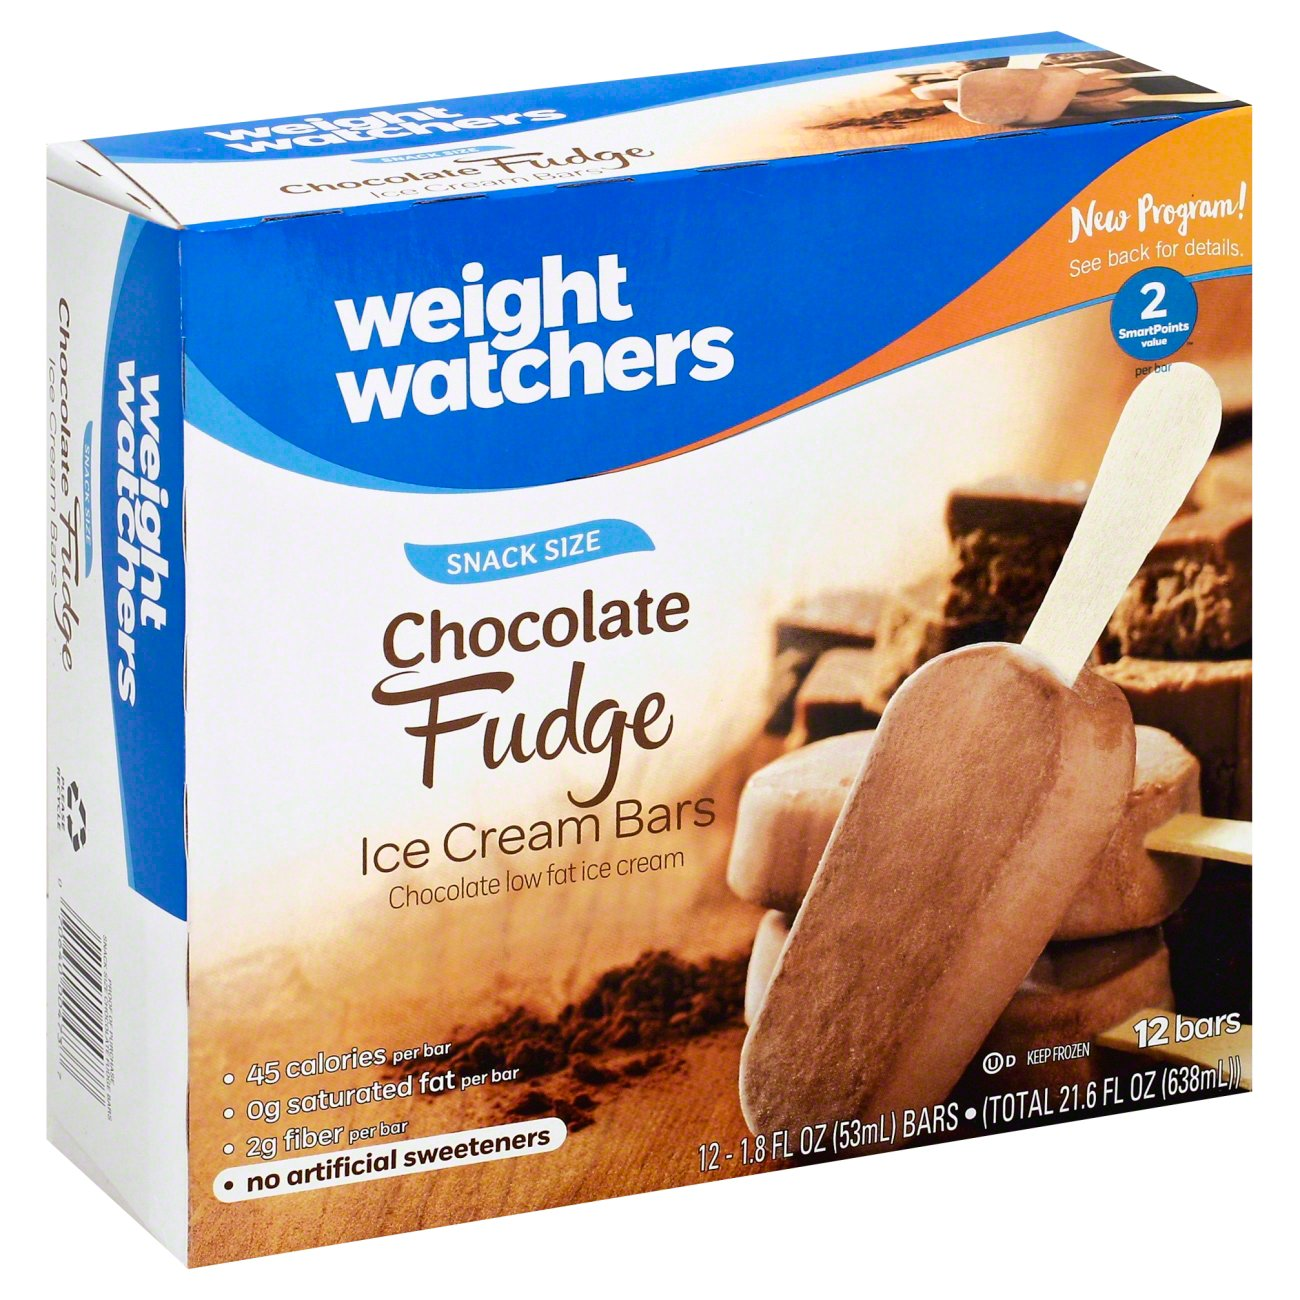 Weight Watchers Snack Size Chocolate Fudge Bars Shop Bars Pops